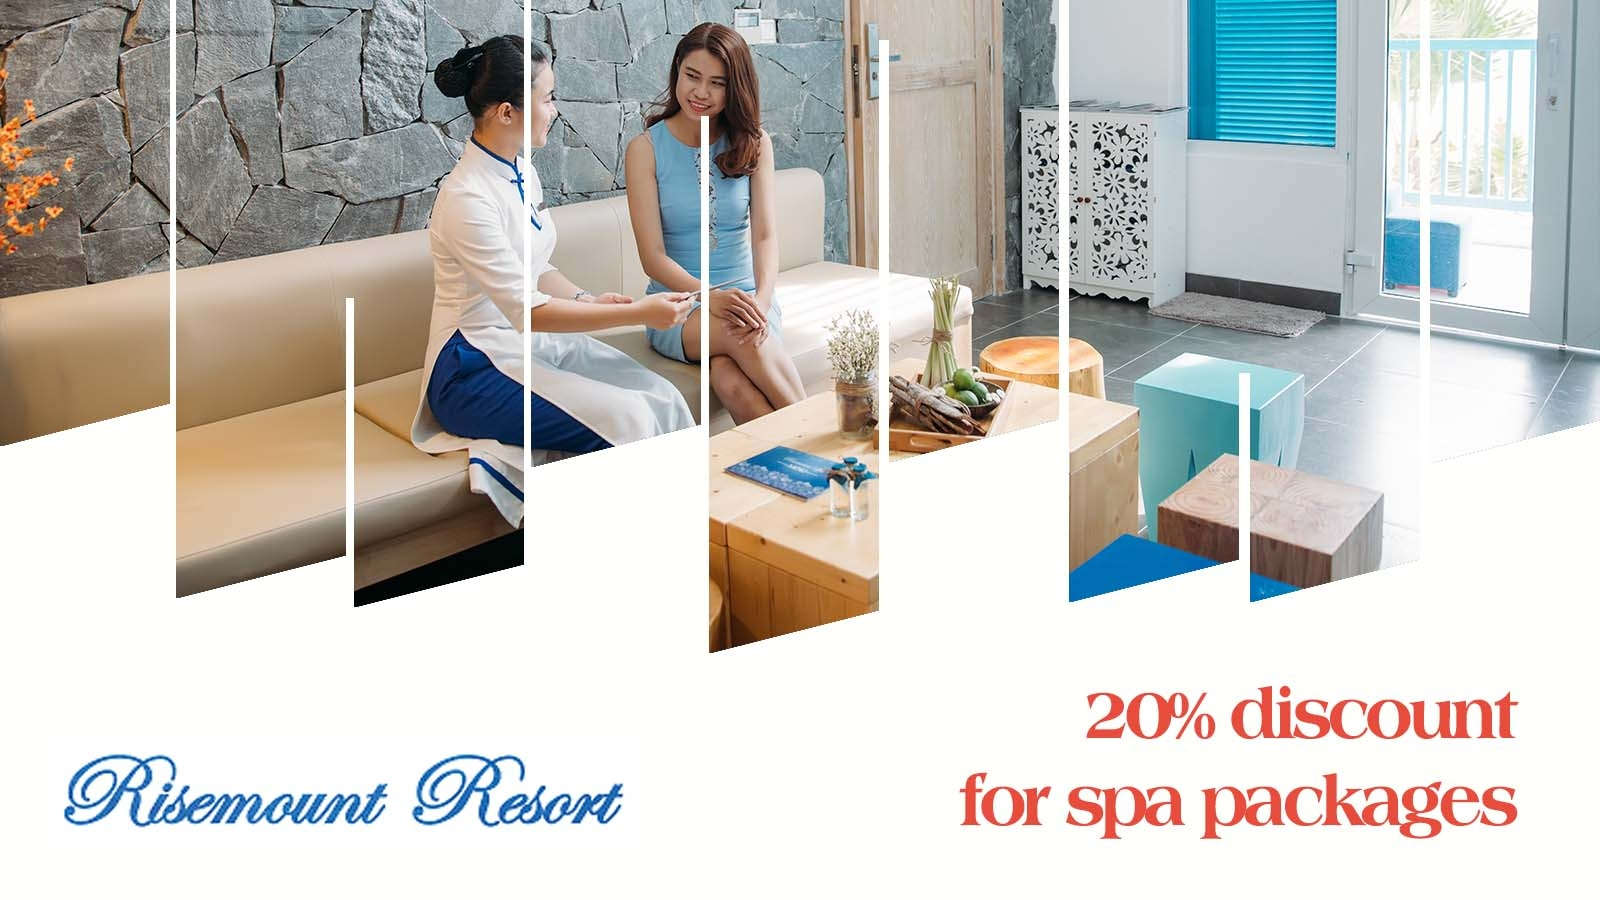 Risemount Resort – 20% discount for spa packages2